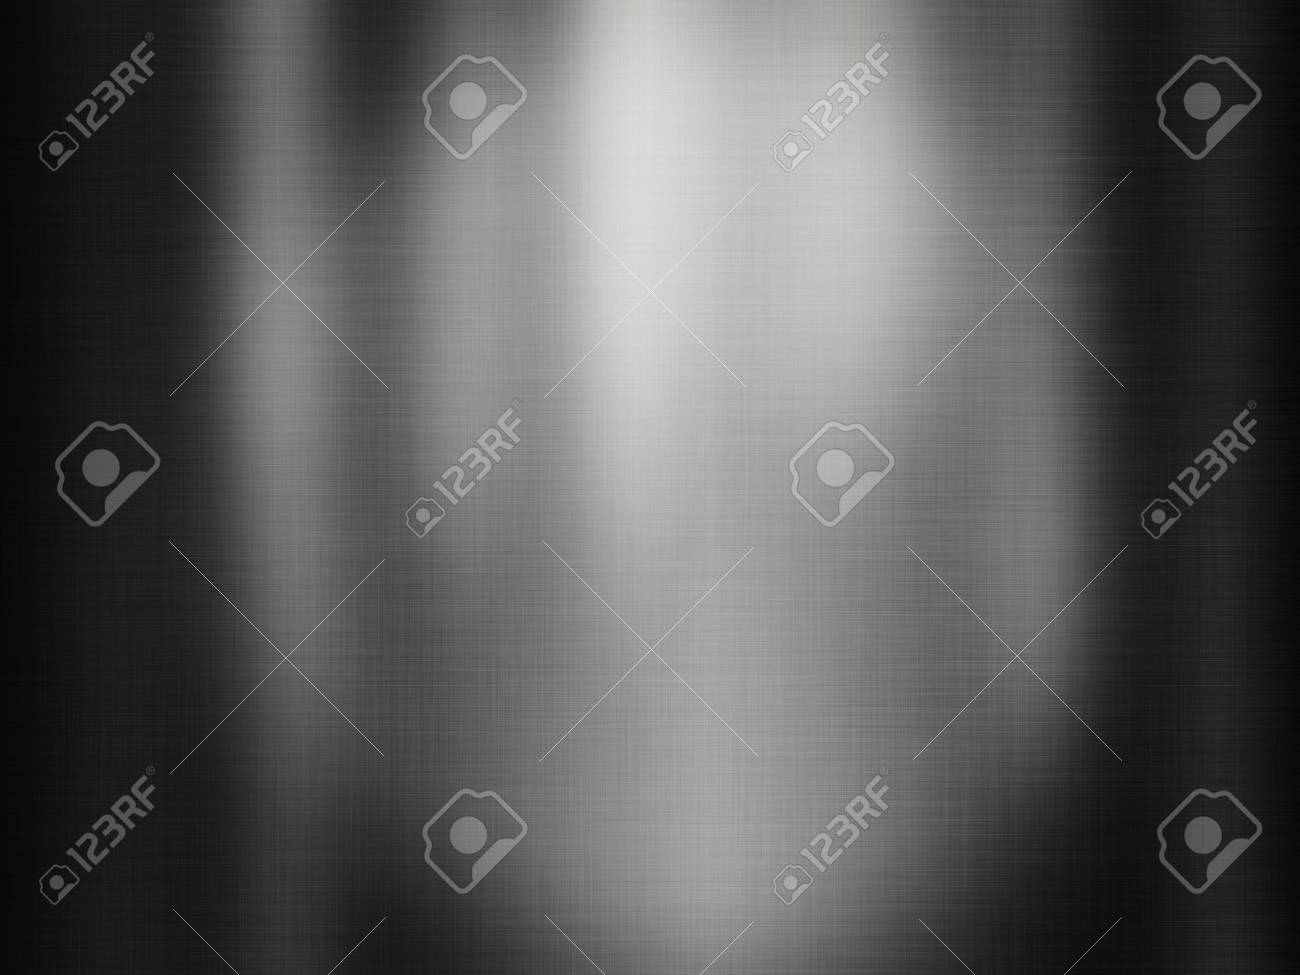 Stainless steel texture or metal texture background Banque d'images - 75076765